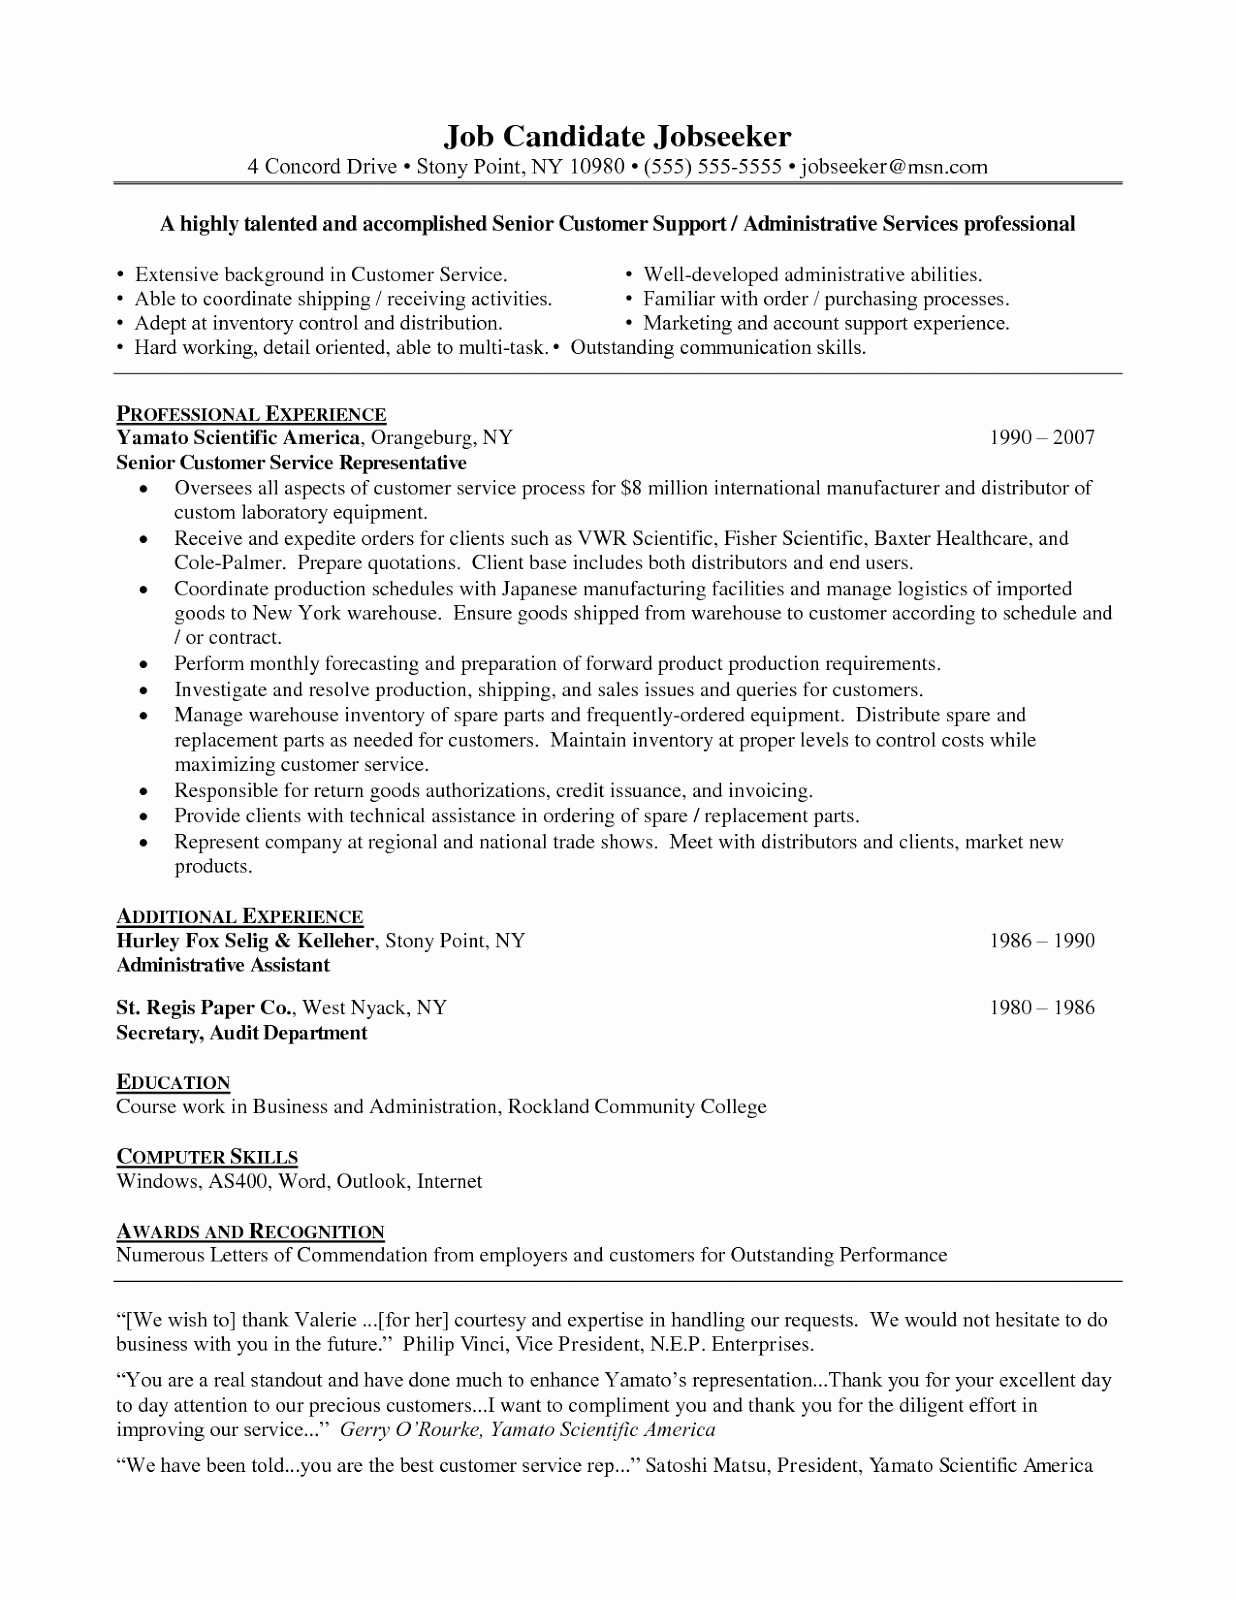 career summary resume customer service objective examples good objective for resume customer service